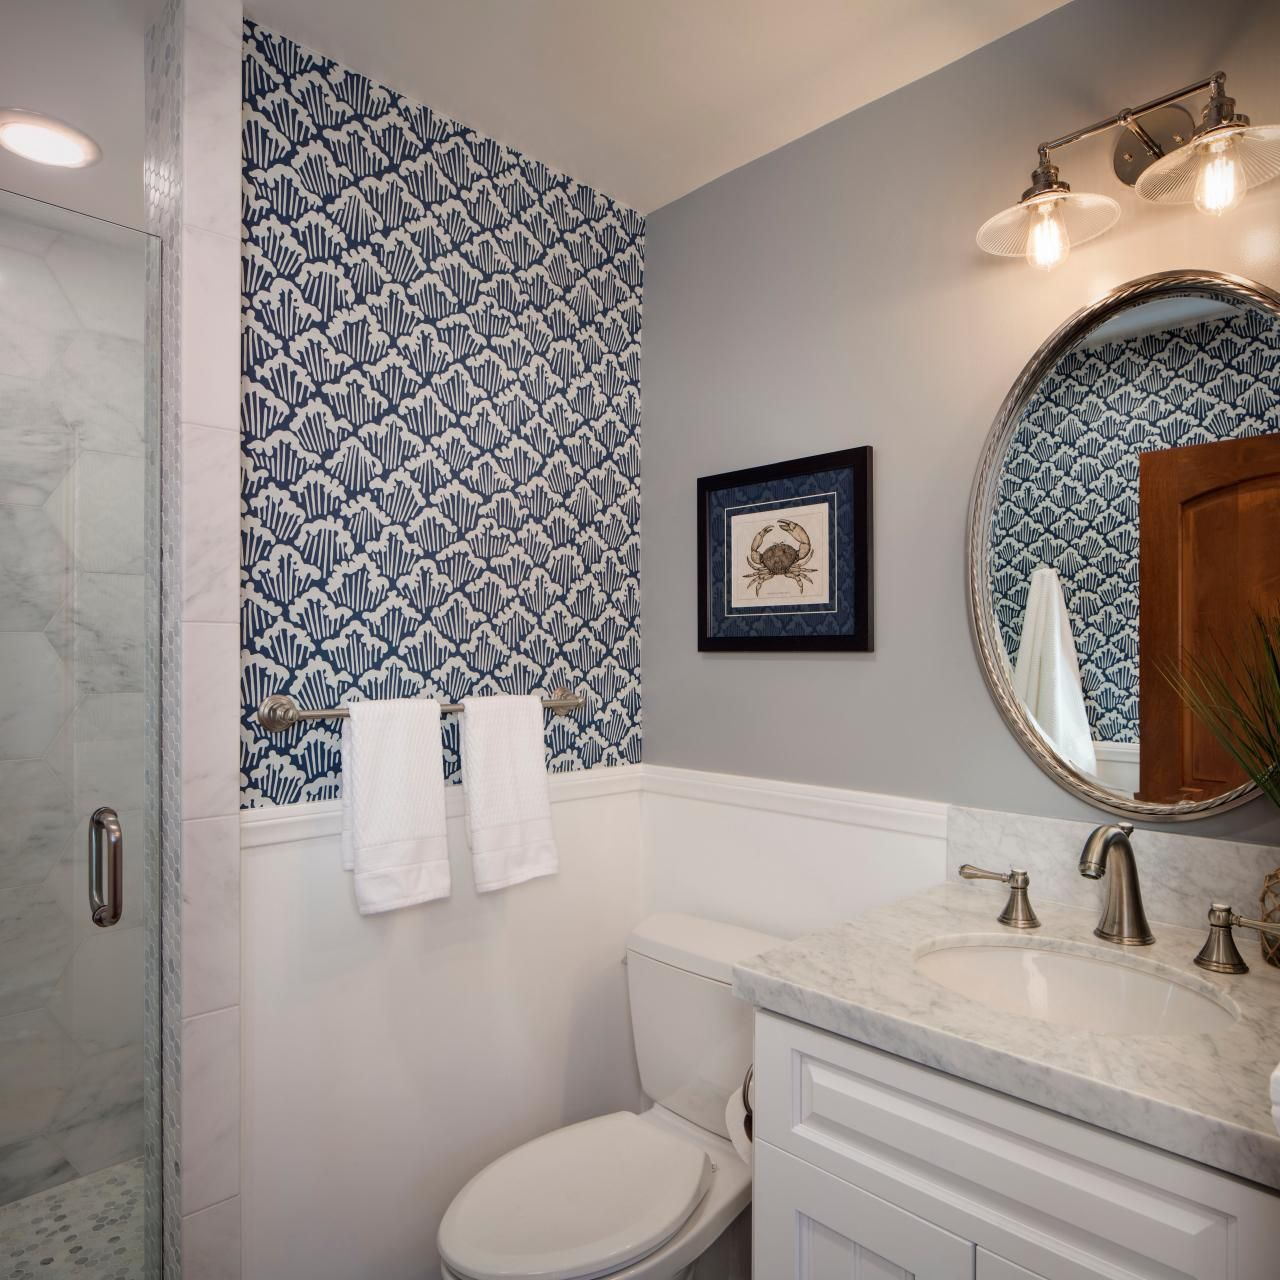 redoing bathroom%0A Cresting waves make a compelling graphic backdrop in this petite bathroom   Keeping the wallpaper only in select areas of the room keeps the pattern  from